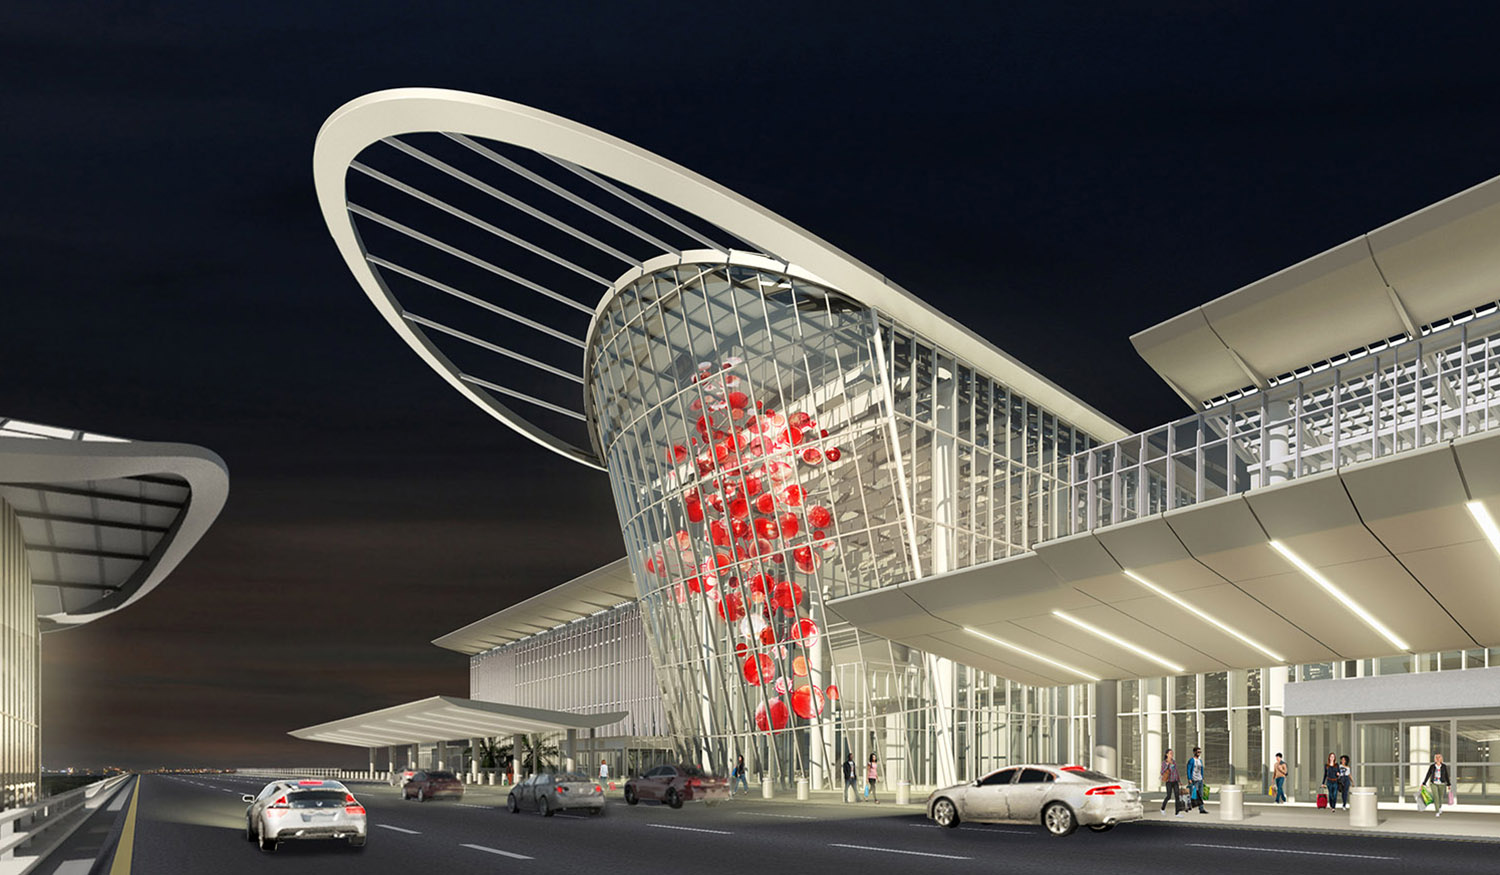 The new South Terminal Complex establishes Orlando as a travel destination. Fentress Architects